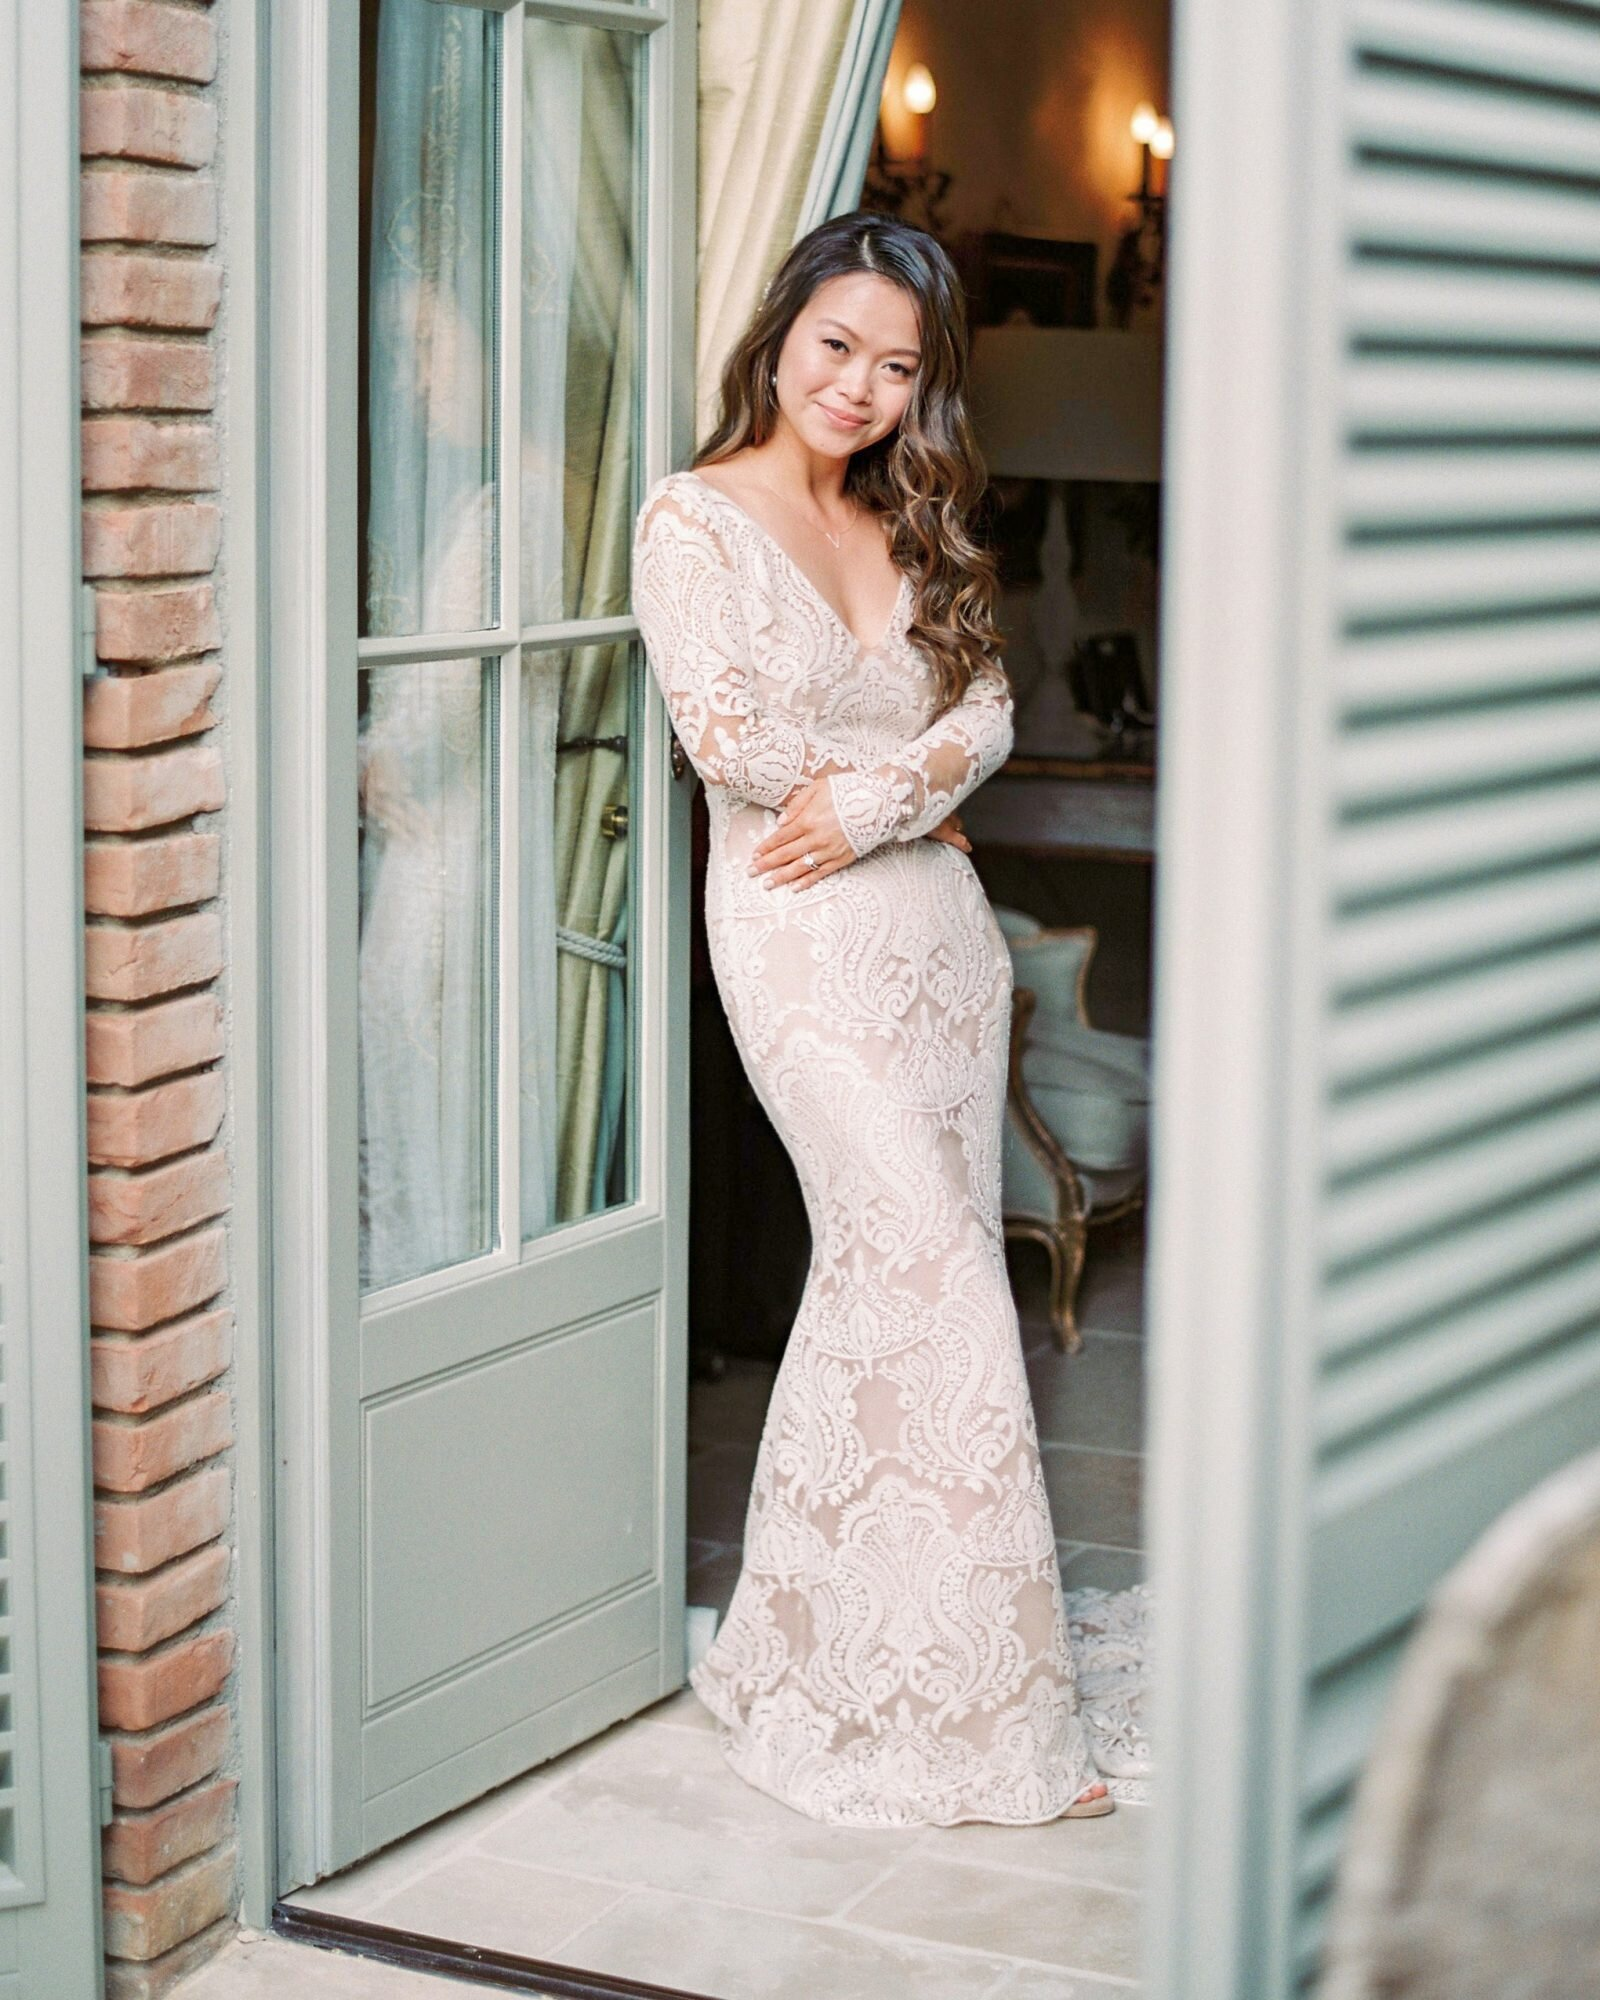 How to Wear a Long-Sleeved Wedding Dress in the Summer  Martha